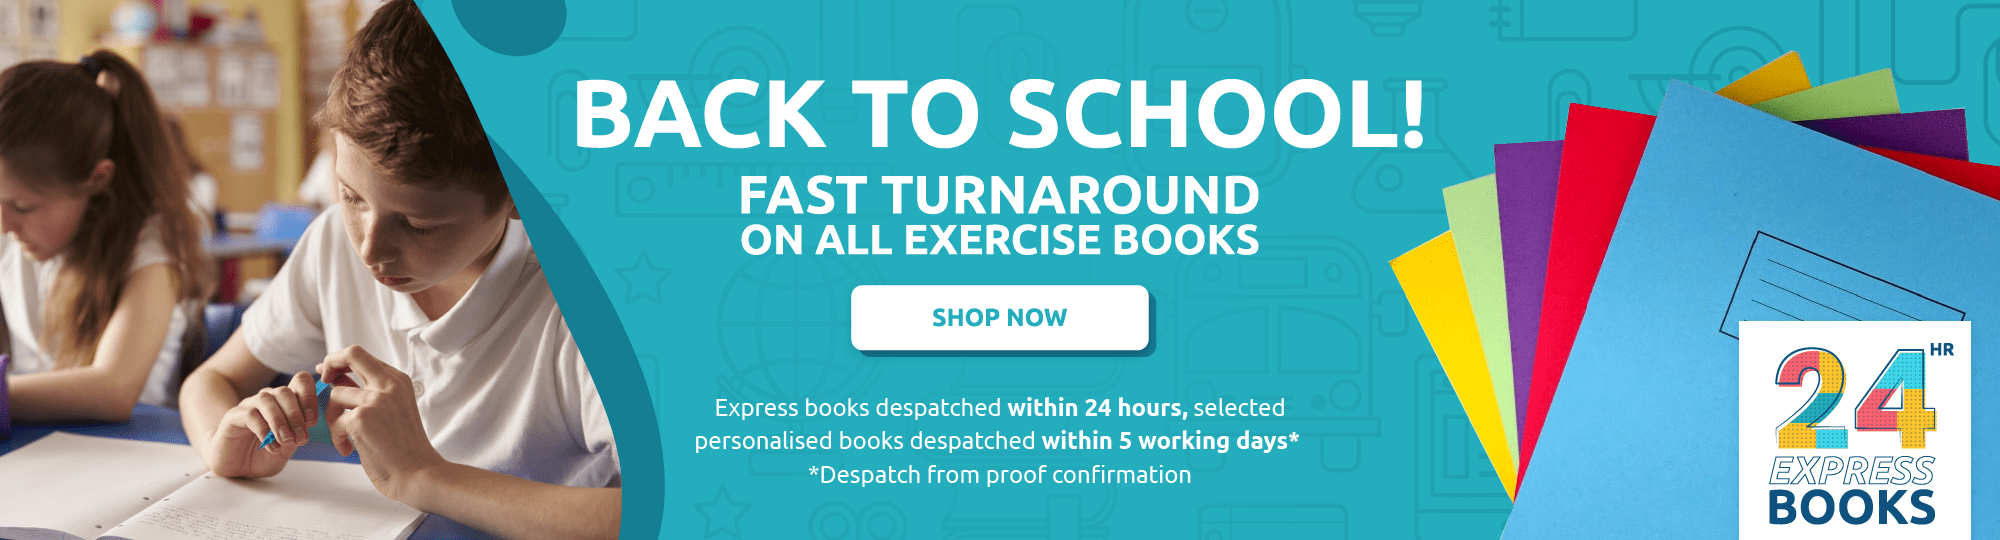 Back To School - Fast Turnaround On All Exercise Books